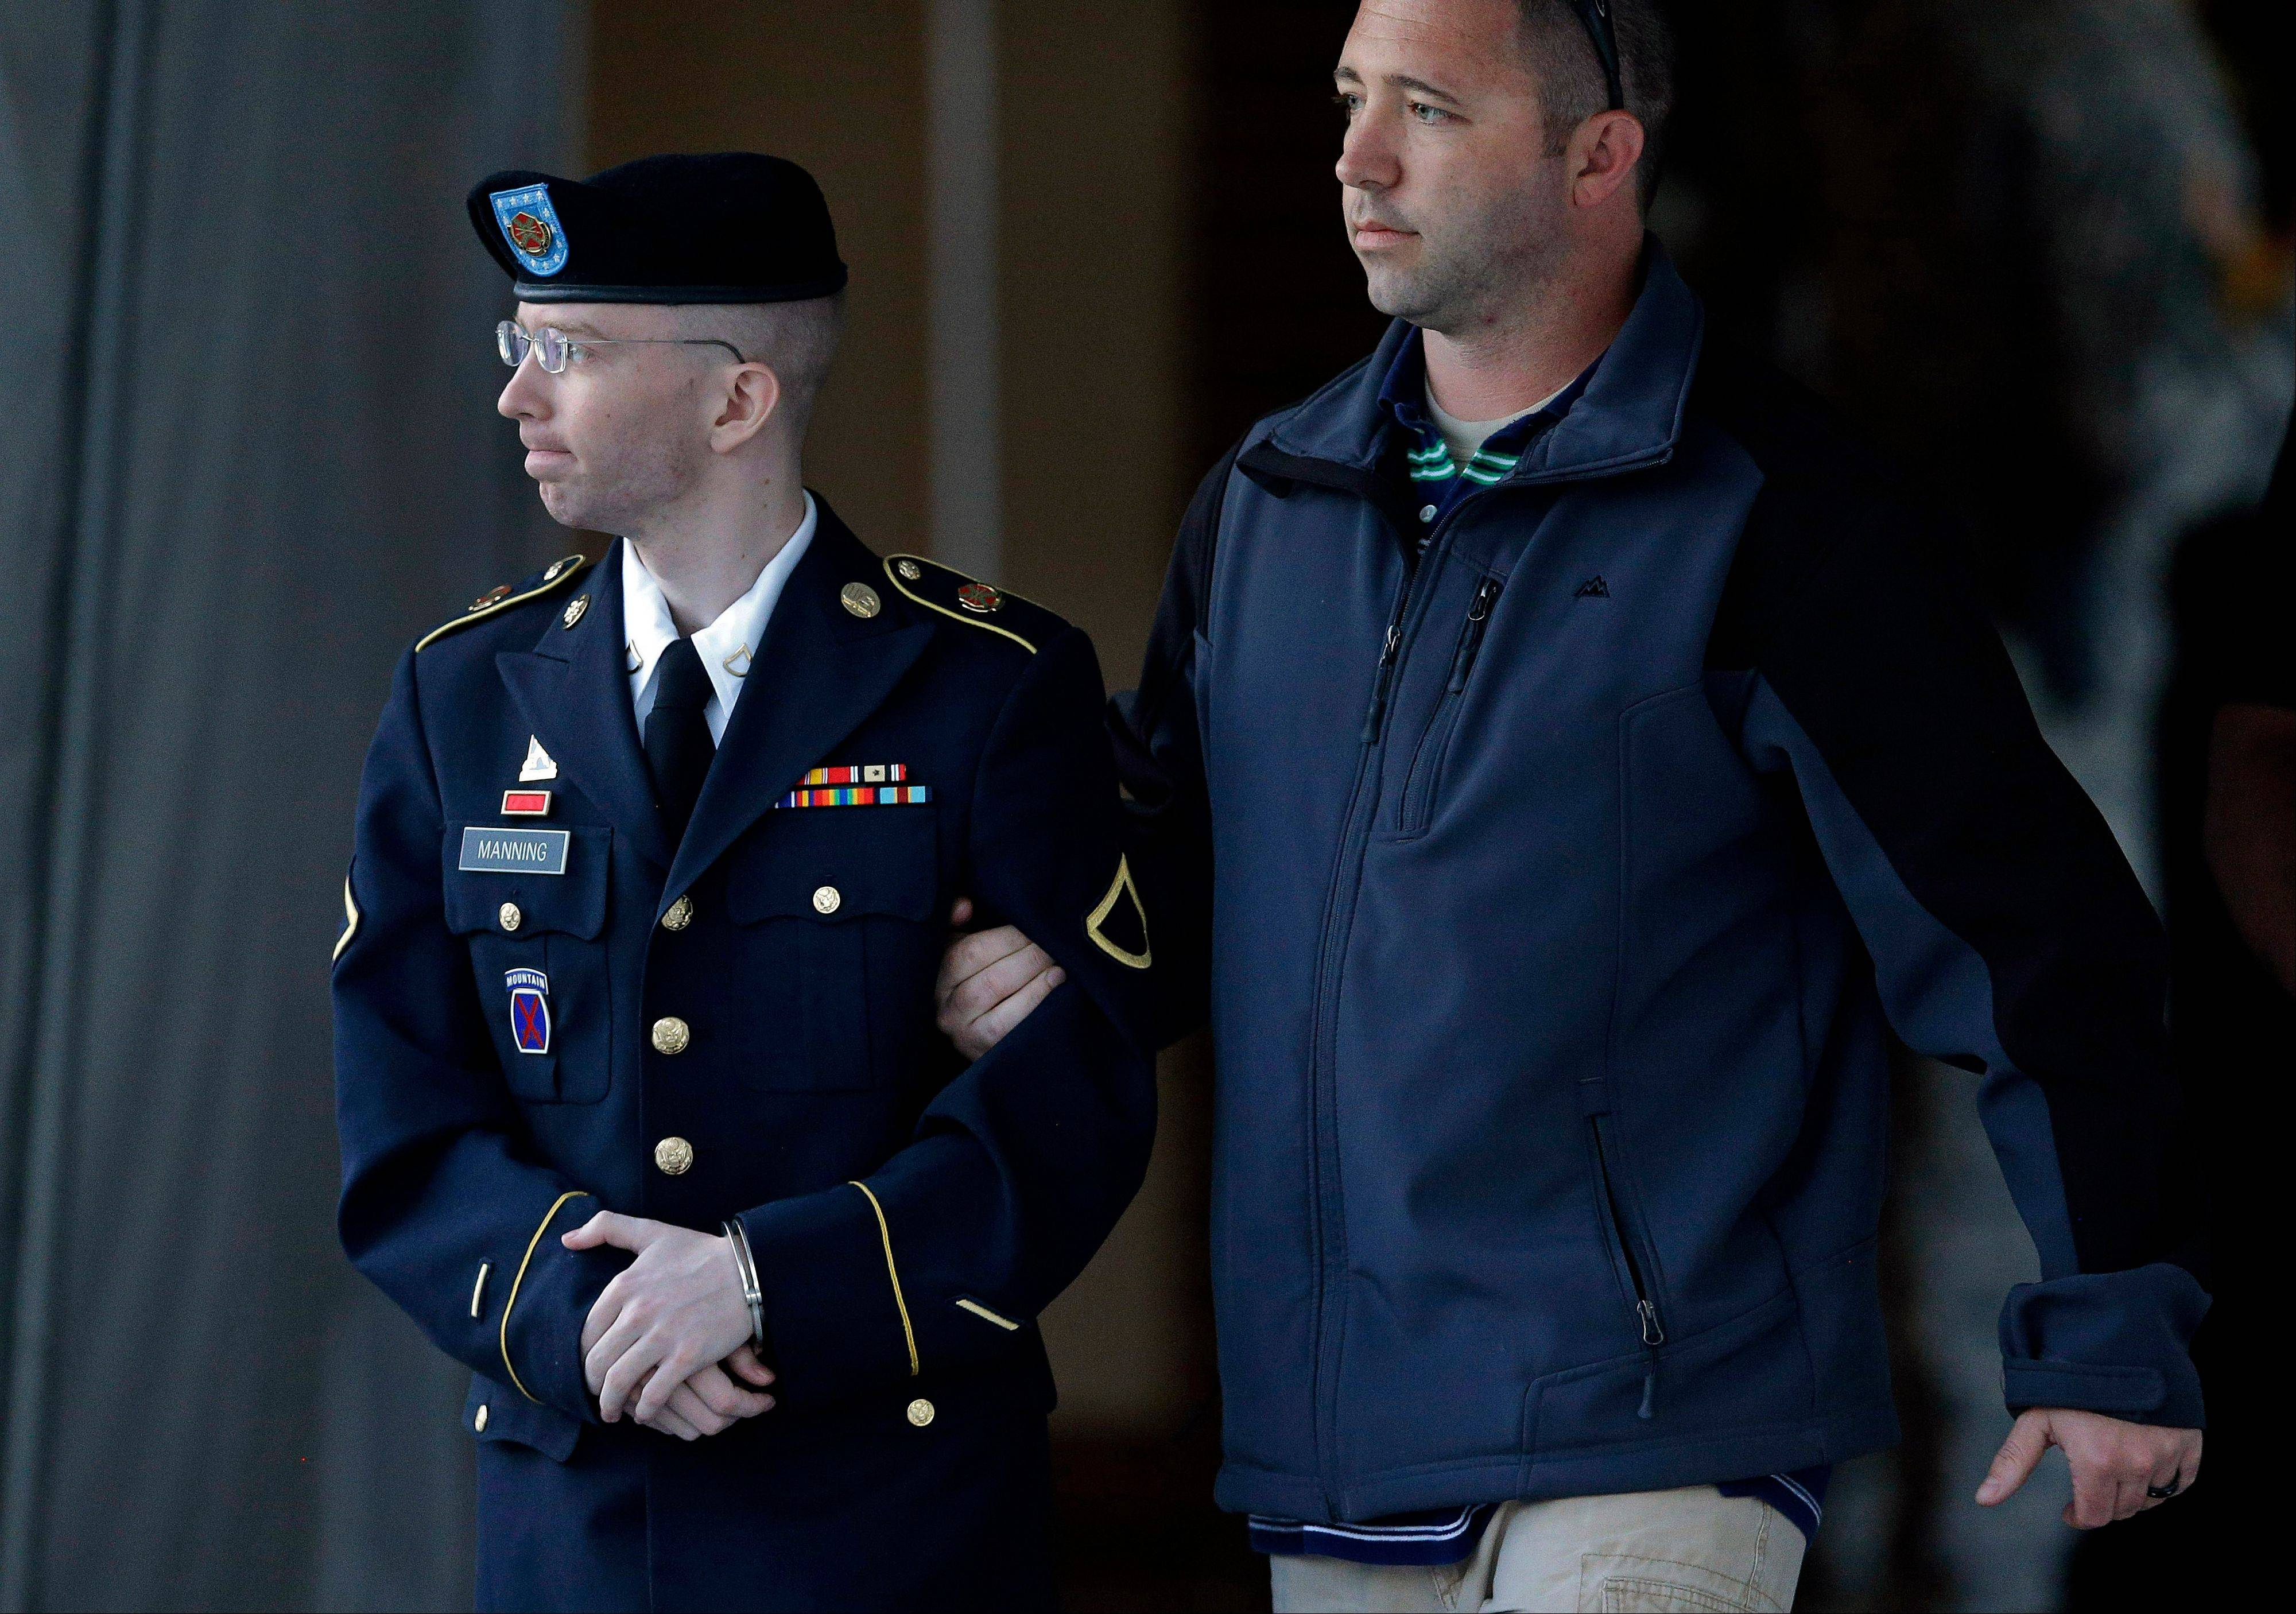 Manning guilty of 20 charges, not aiding the enemy